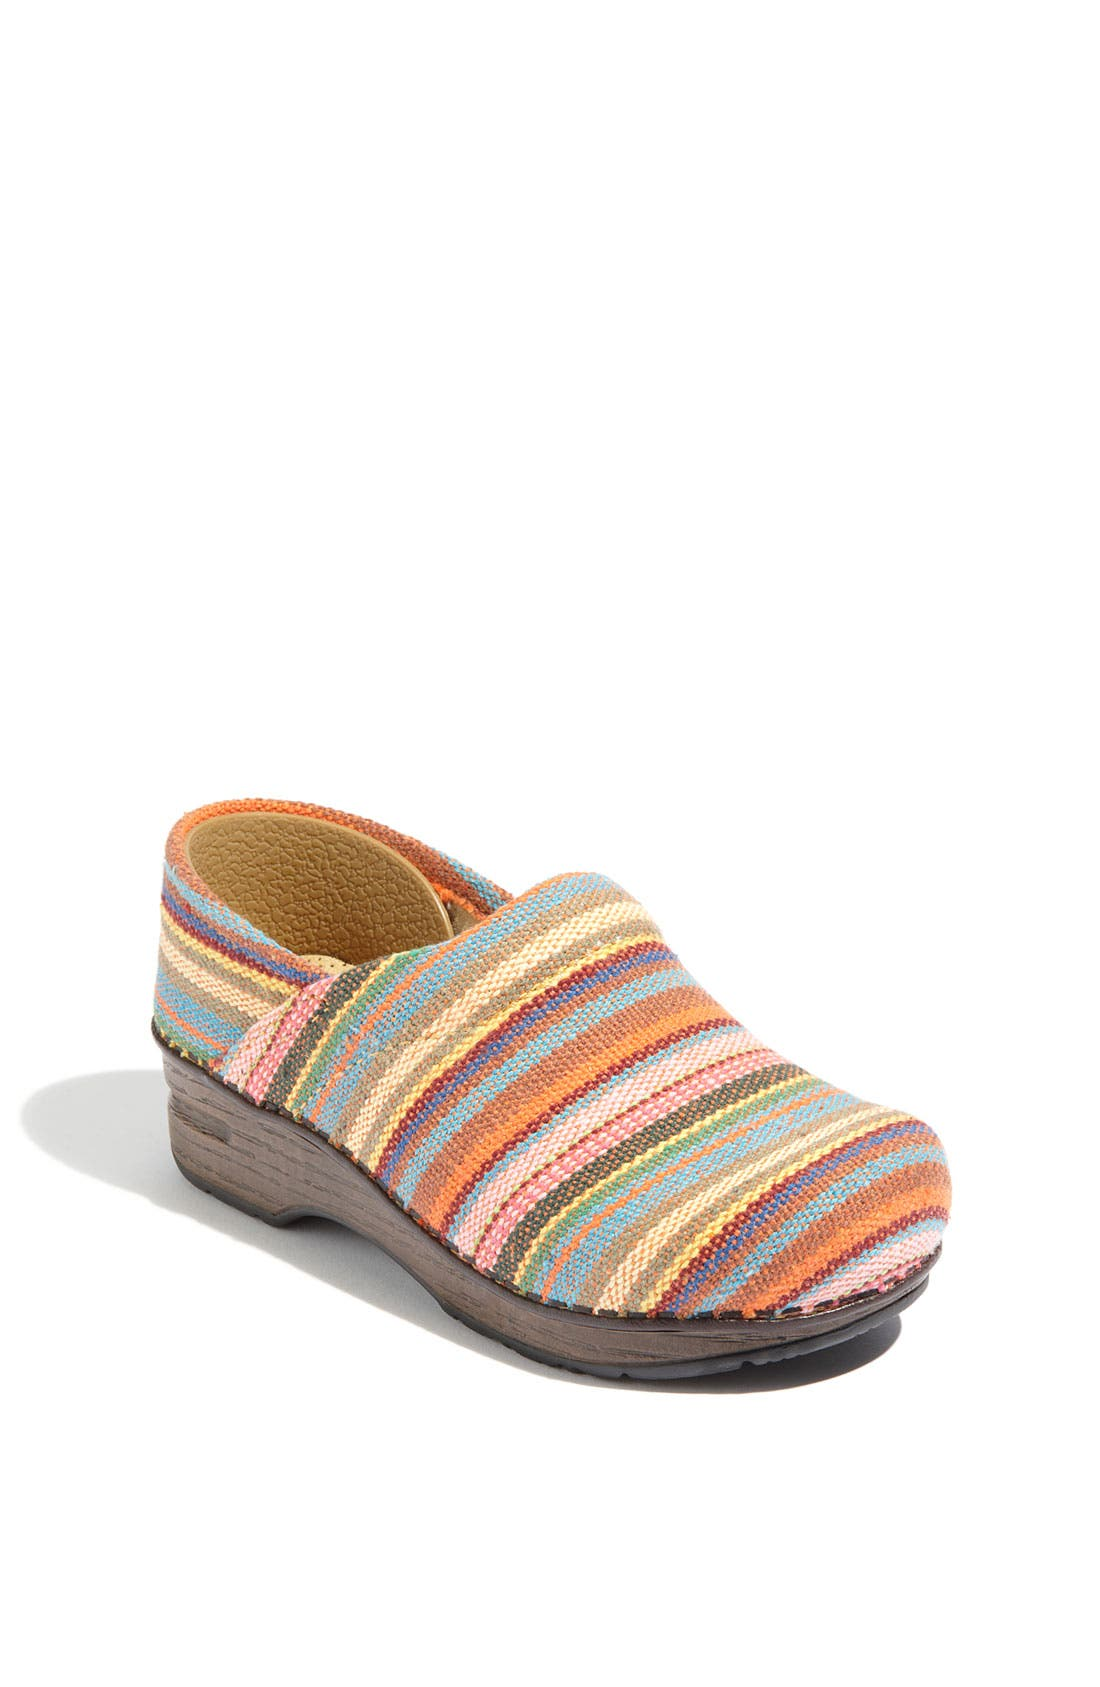 Alternate Image 1 Selected - Dansko 'Sansko Gitte' Clog (Toddler, Little Kid & Big Kid)